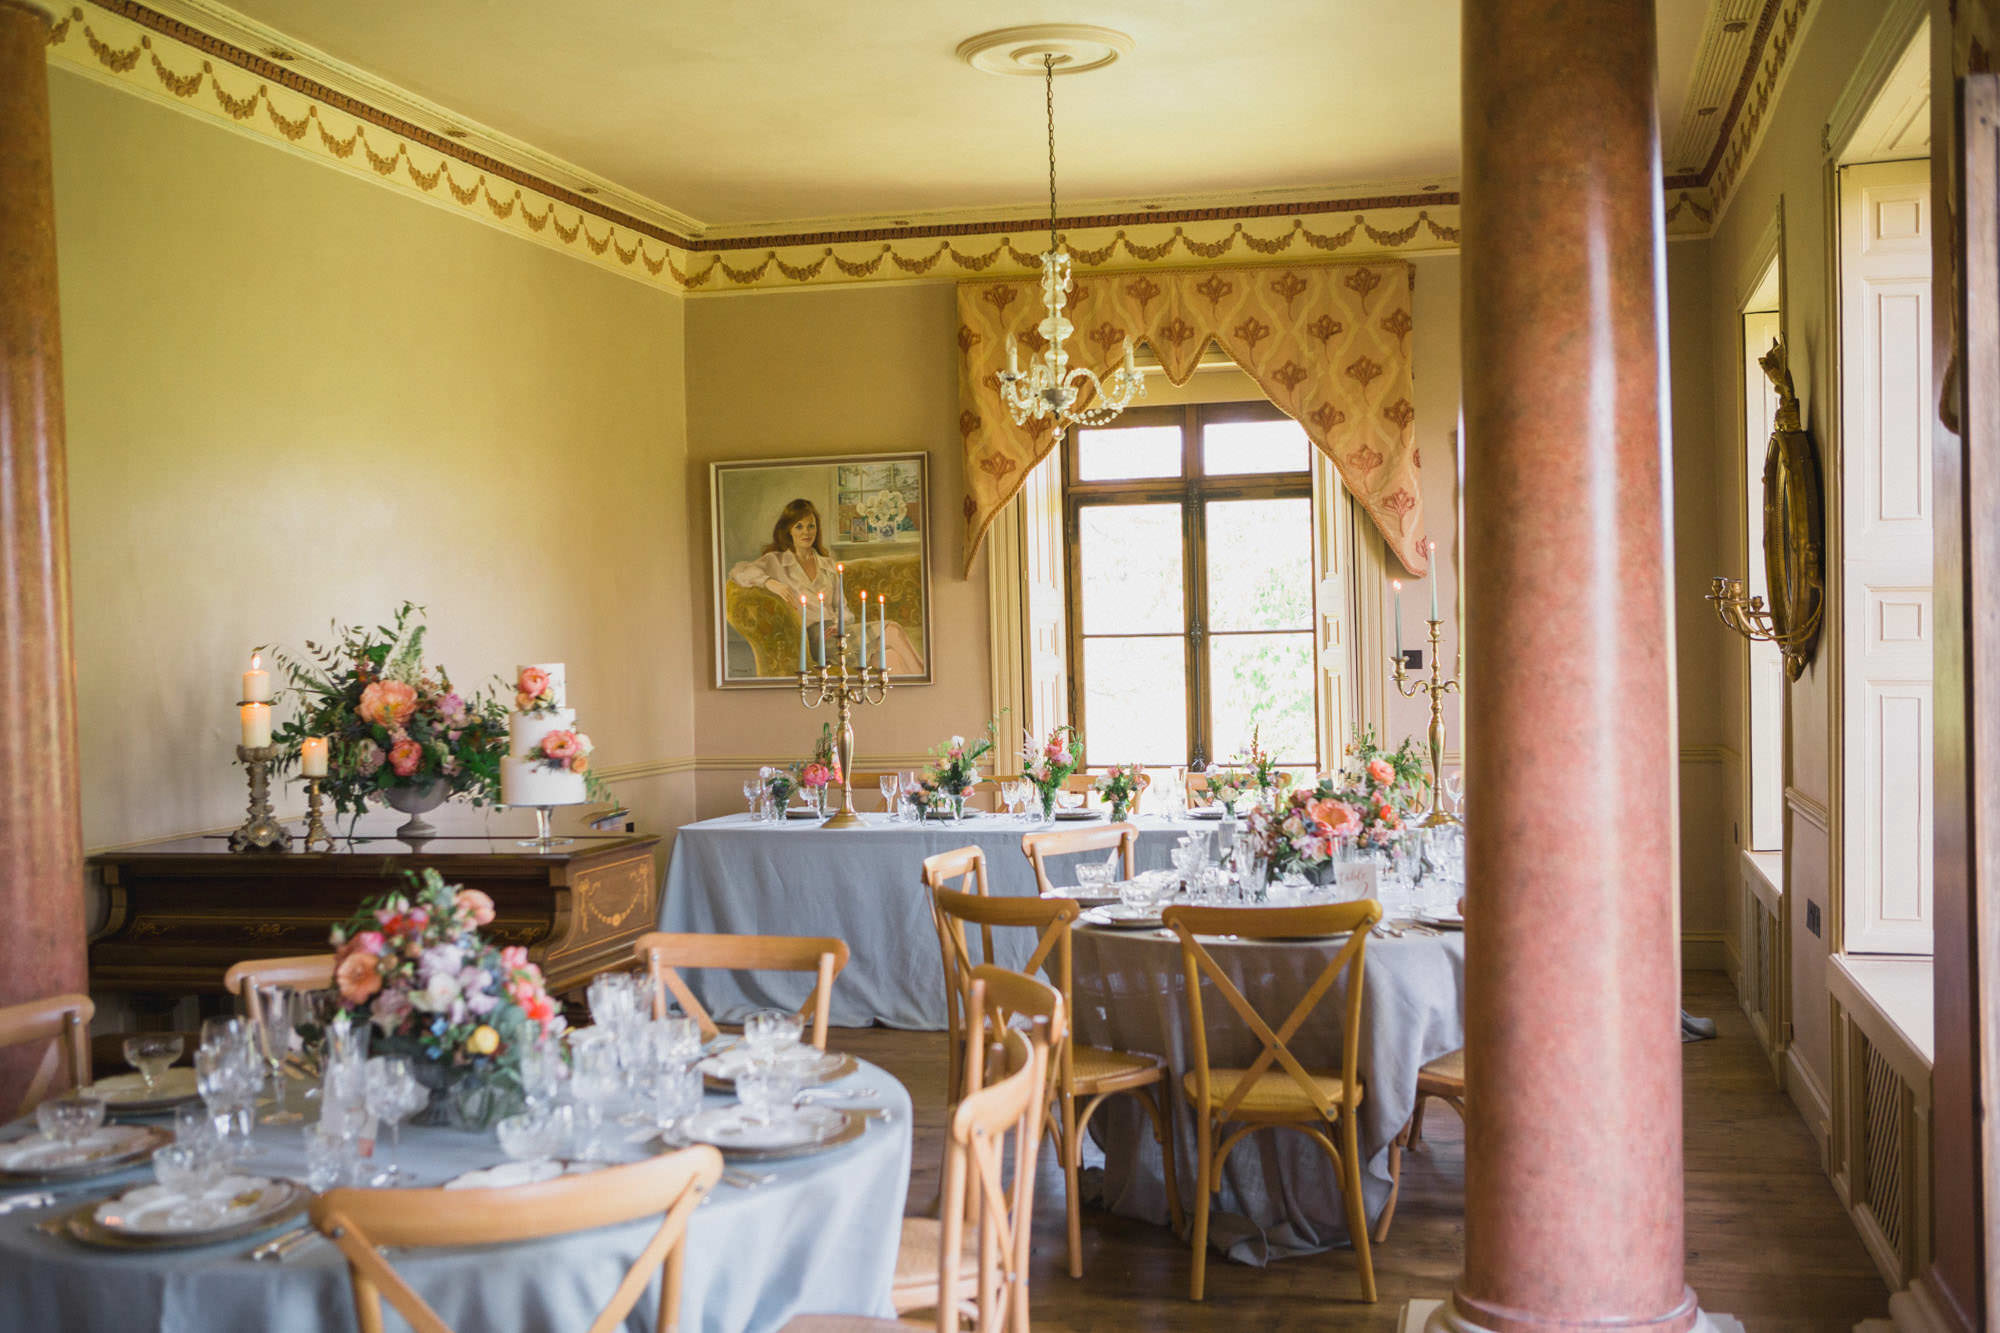 pauntley Court - Gloucestershire Wedding Venue - South West